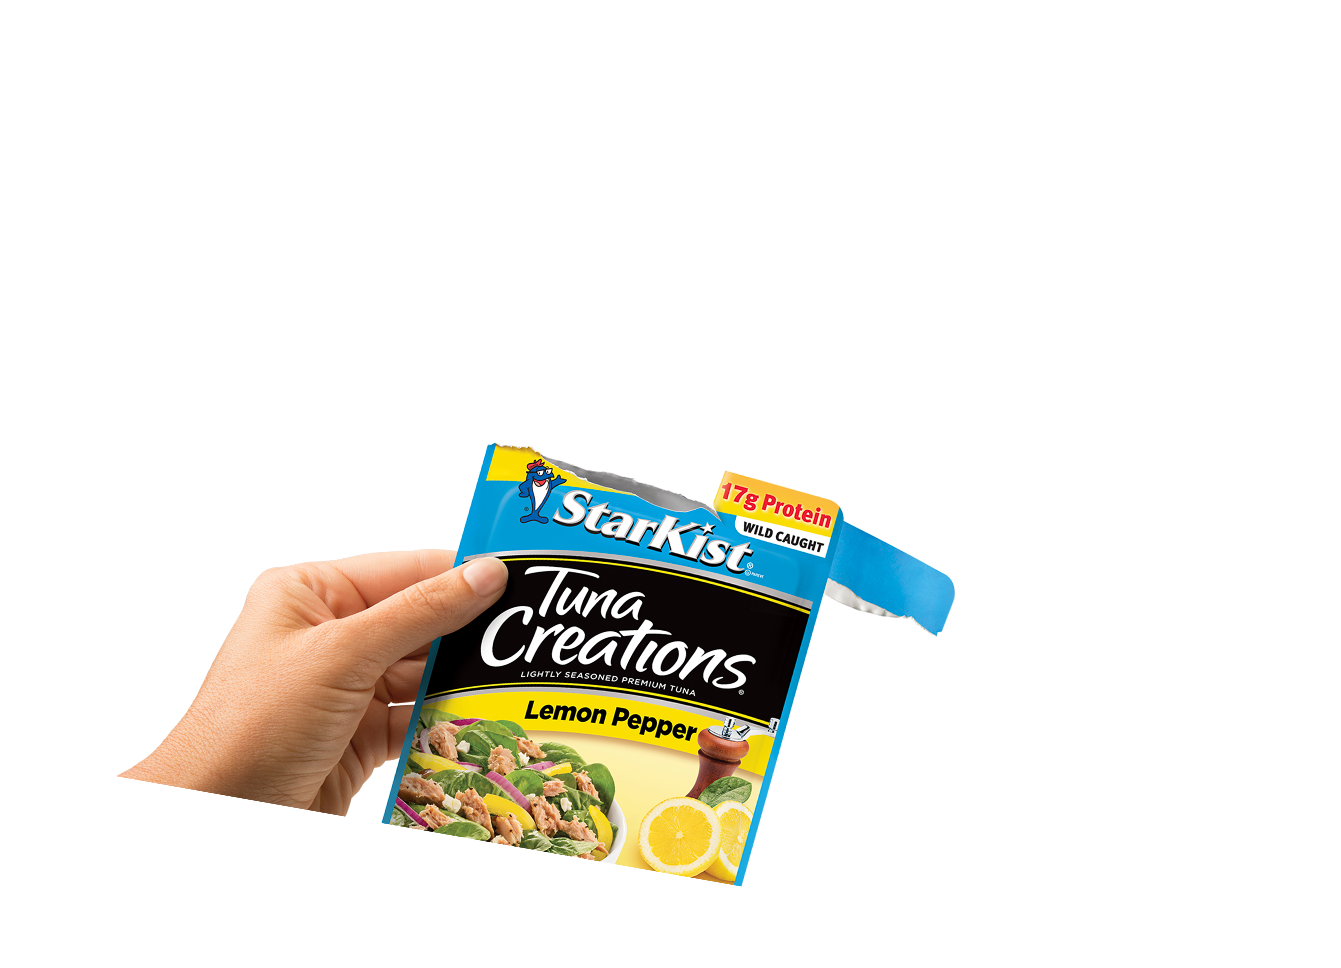 Hand holding a pouch of Starkist Tuna Creations